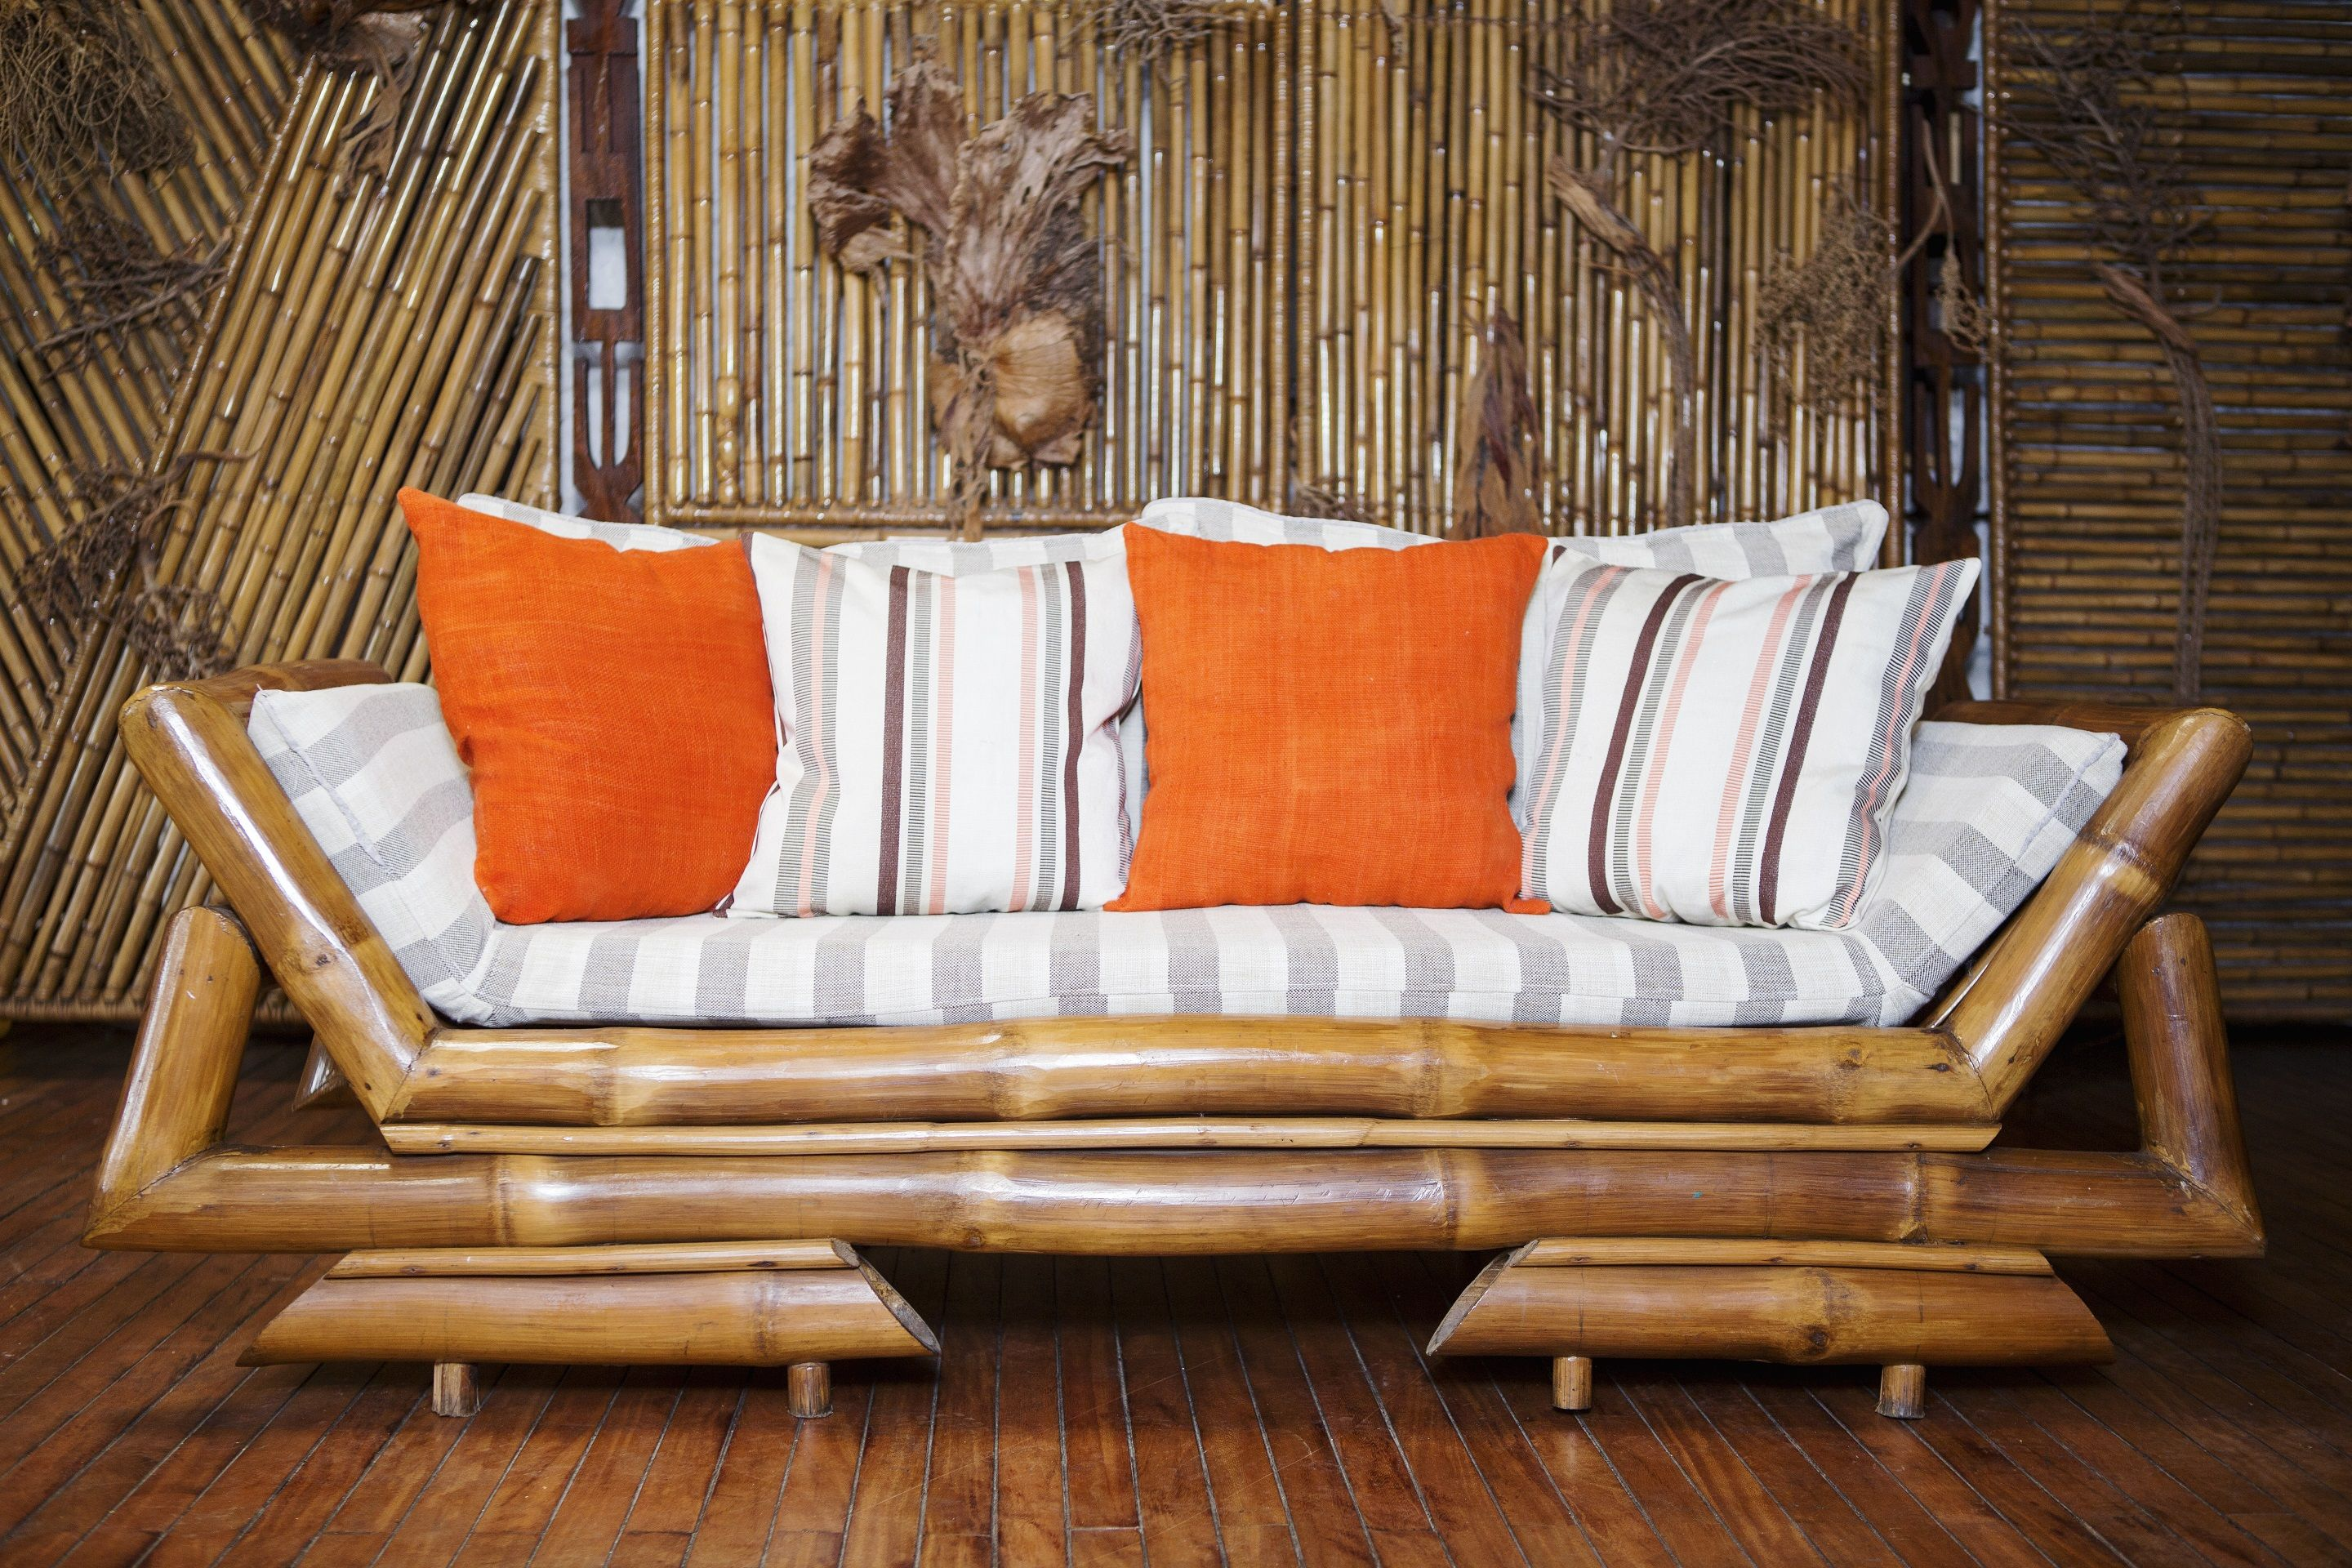 Handmade Cushions By Artisans From Cameroon Orange Is The New Black Interiordesign Craftmanship Artisan Orange Stripes Handmade Cushions Cushions Home